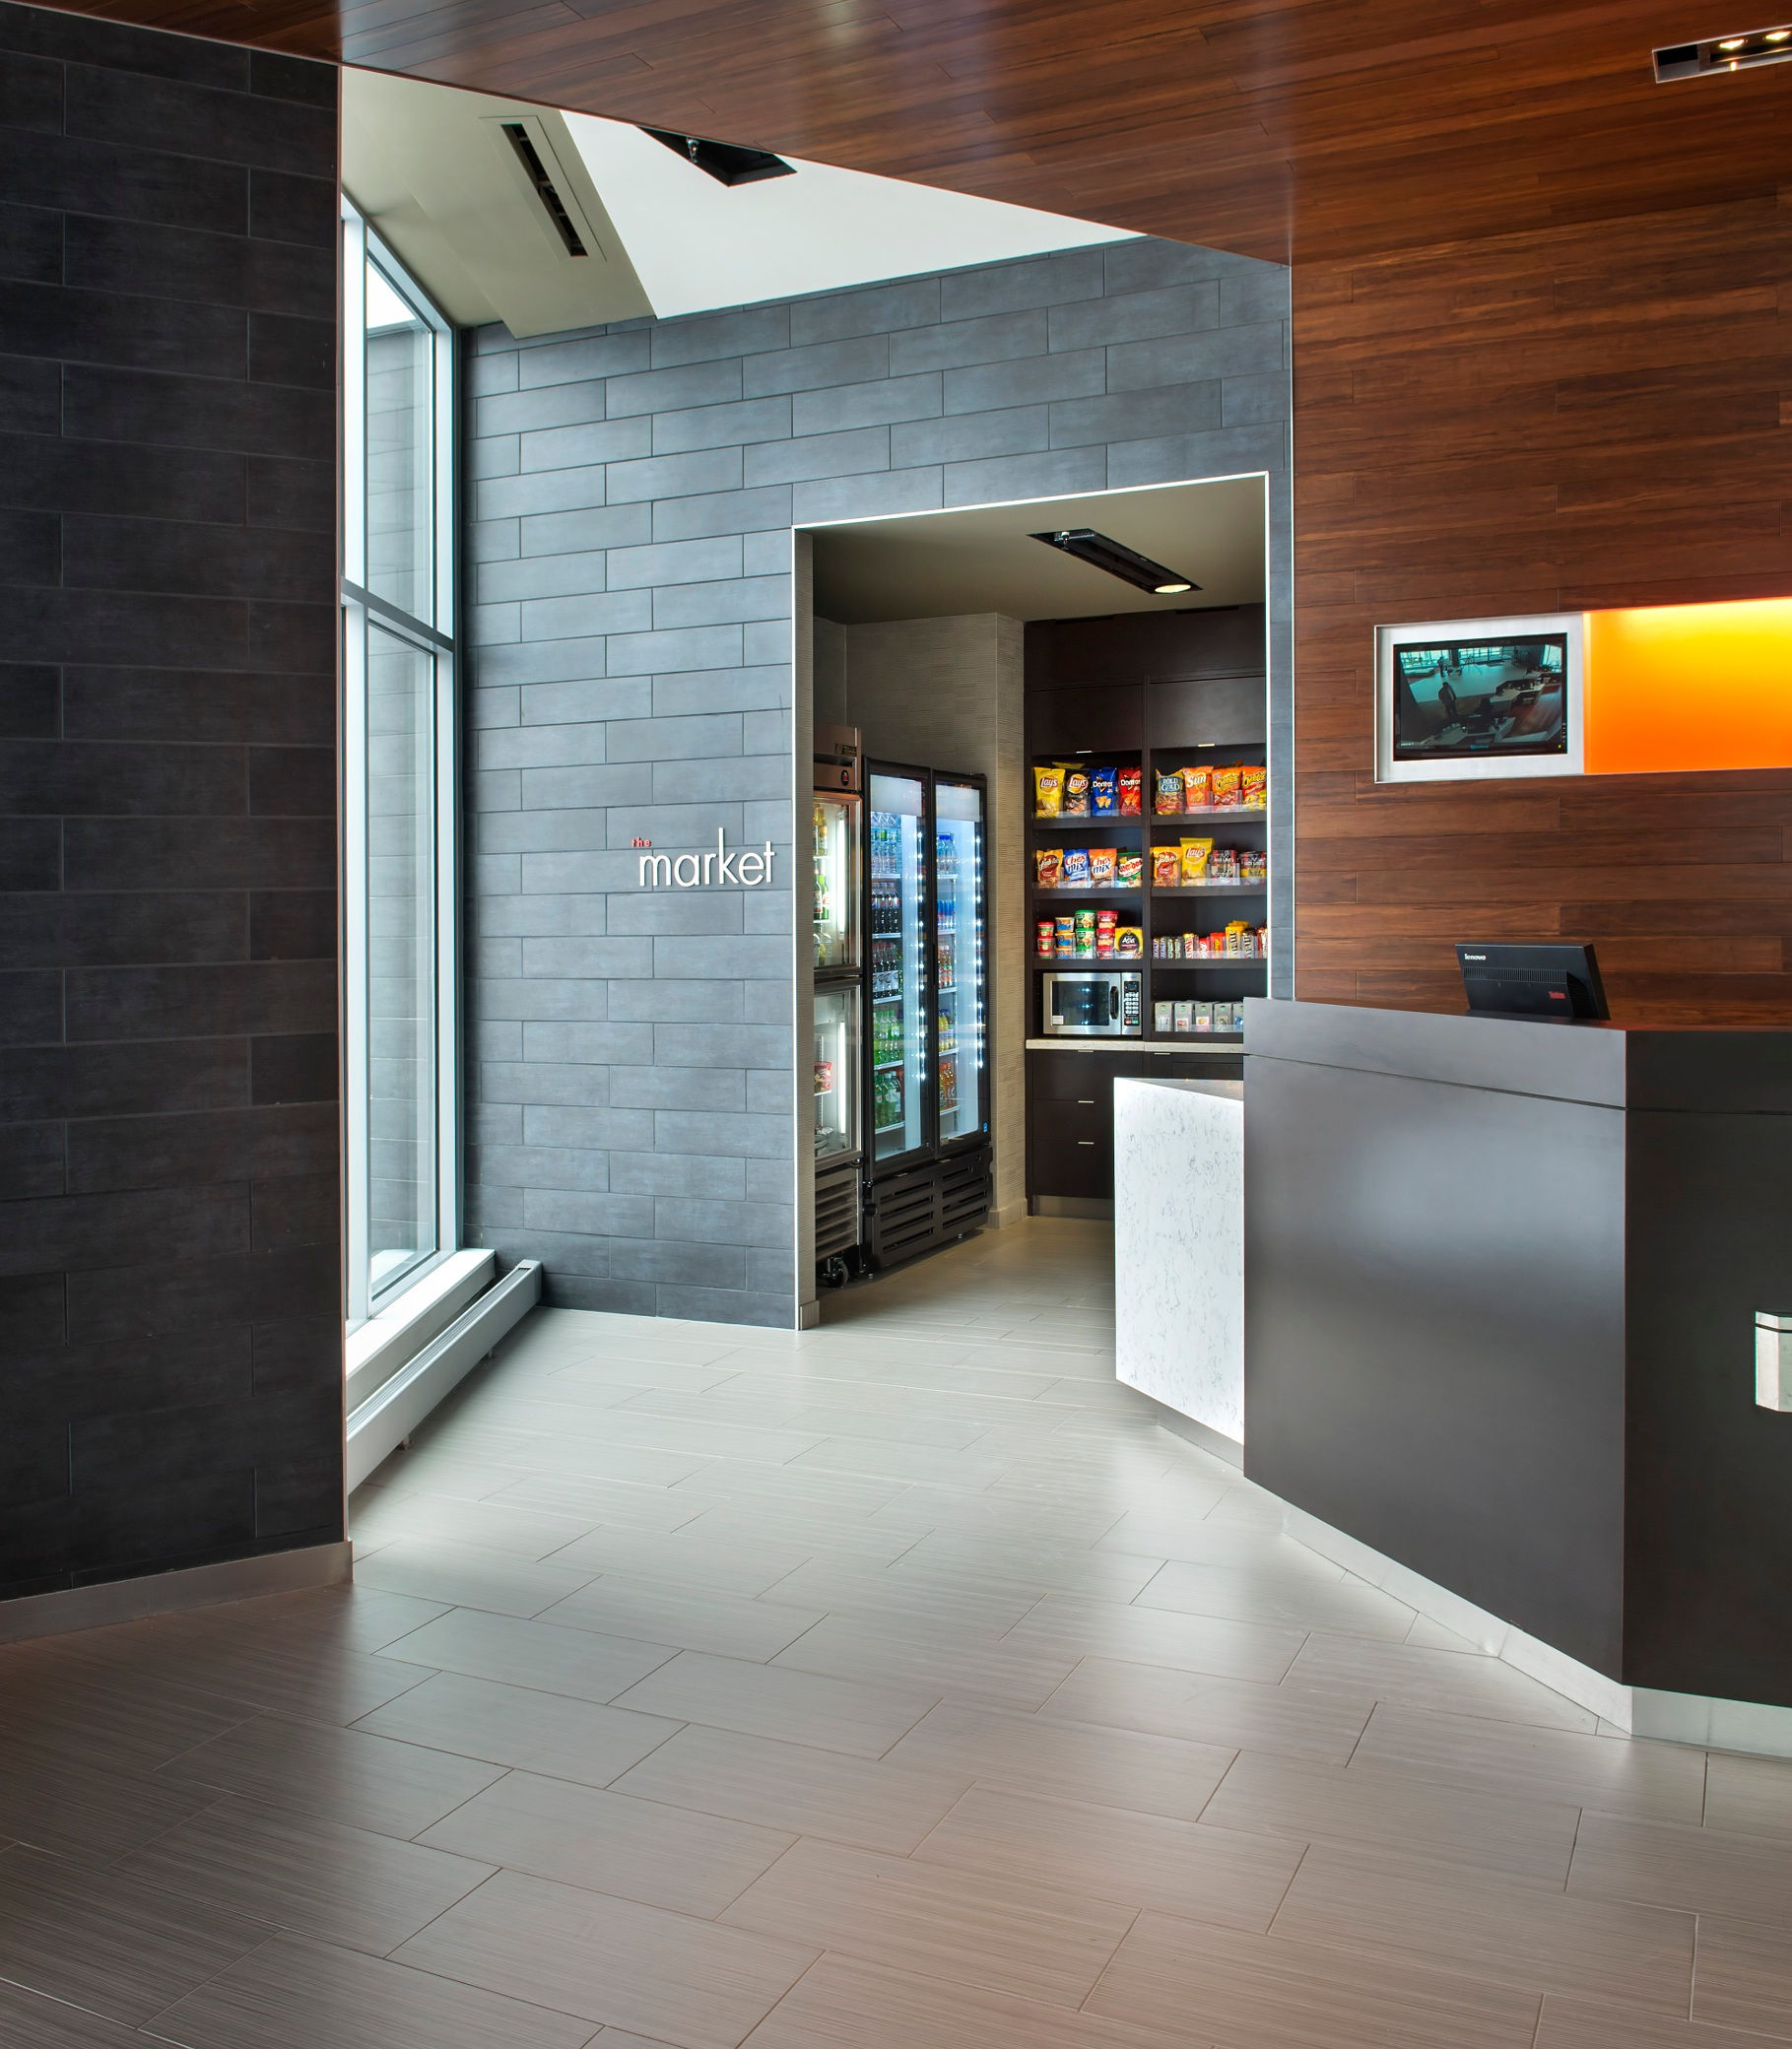 Courtyard by Marriott Philadelphia South at The Navy Yard image 14